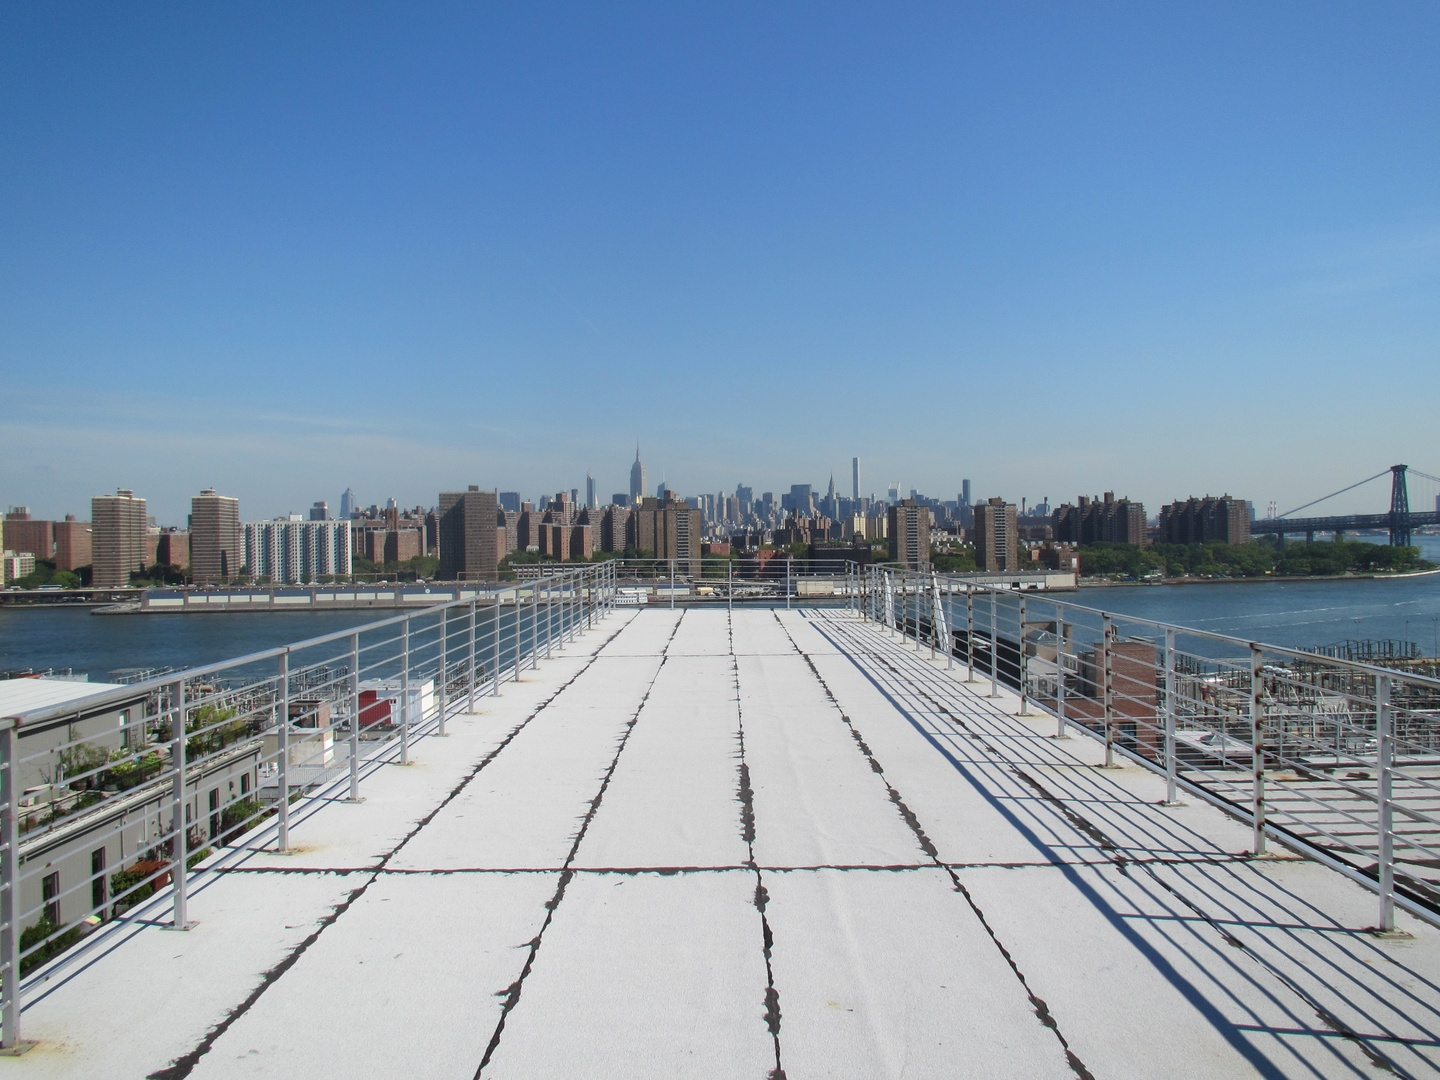 NYC corporate event venues Dachterrasse Seret Studios - Runway Rooftop image 0